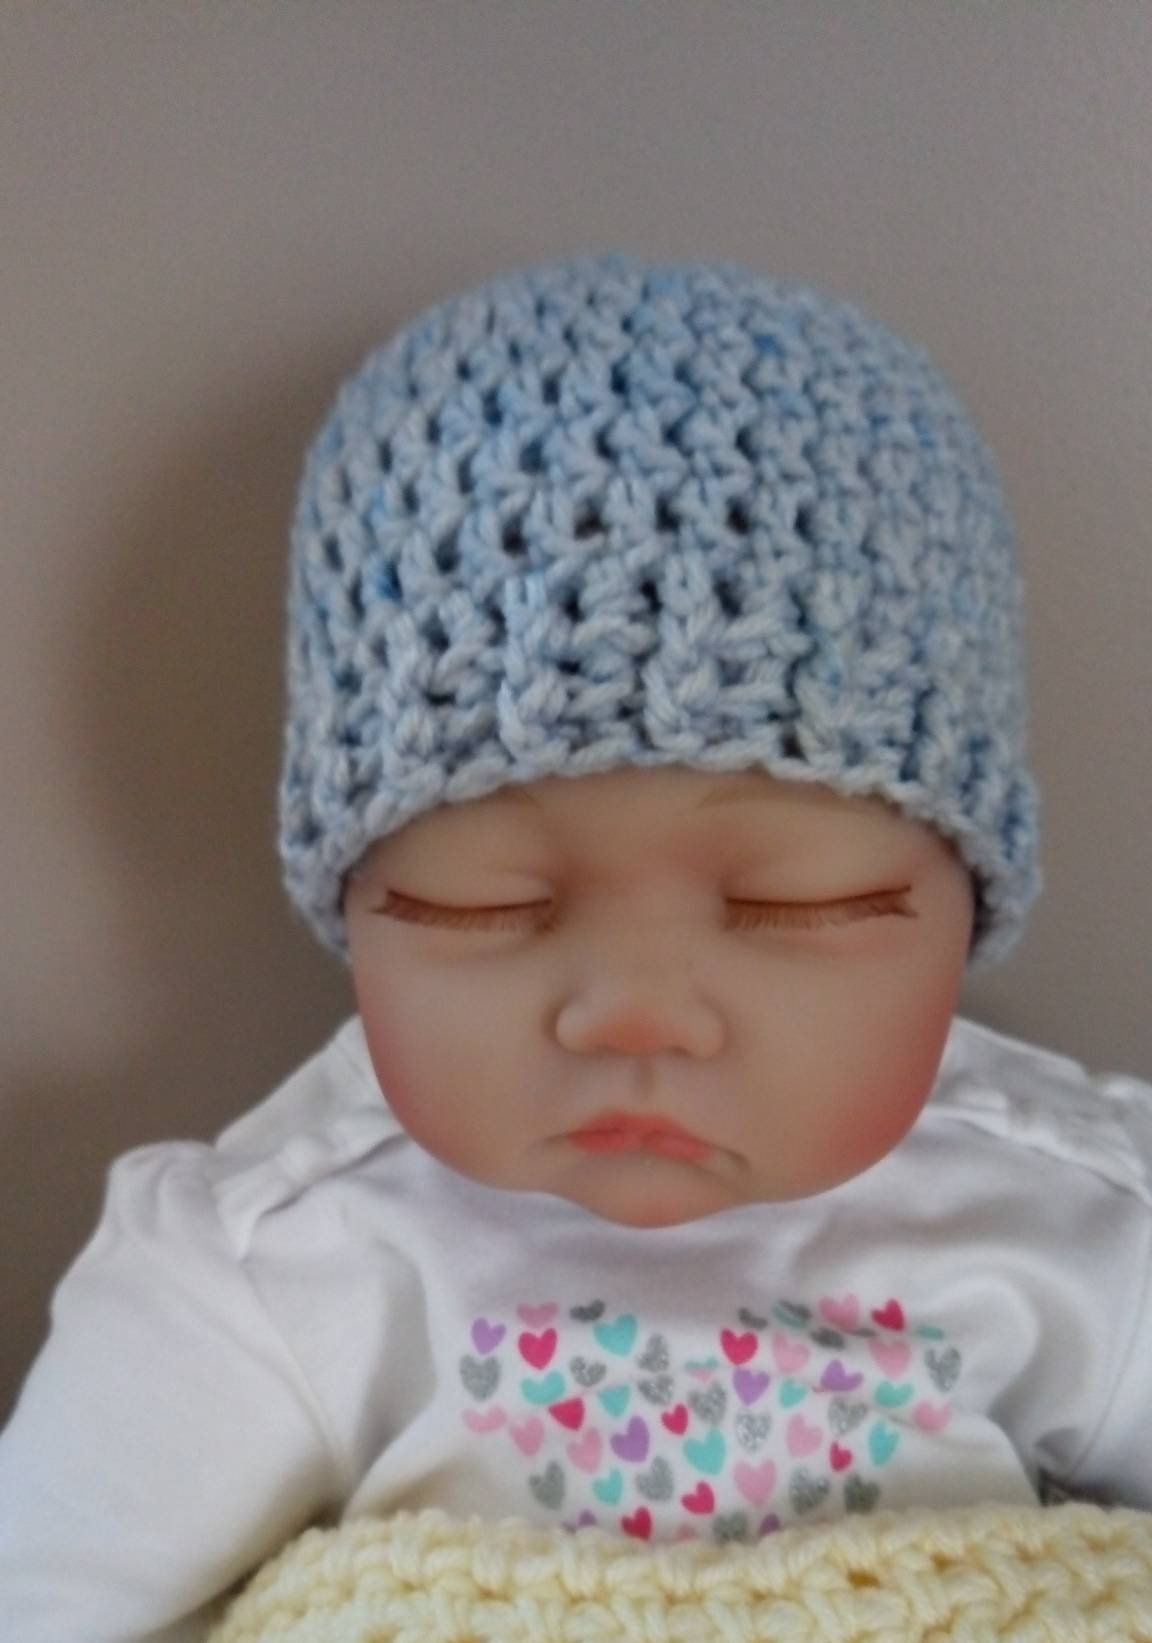 b35a3182458 Crocheted unisex newborn hat by CrochetedHatsbyMPM on Etsy. Crocheted  unisex newborn hat by CrochetedHatsbyMPM on Etsy Baby Boy Hats ...